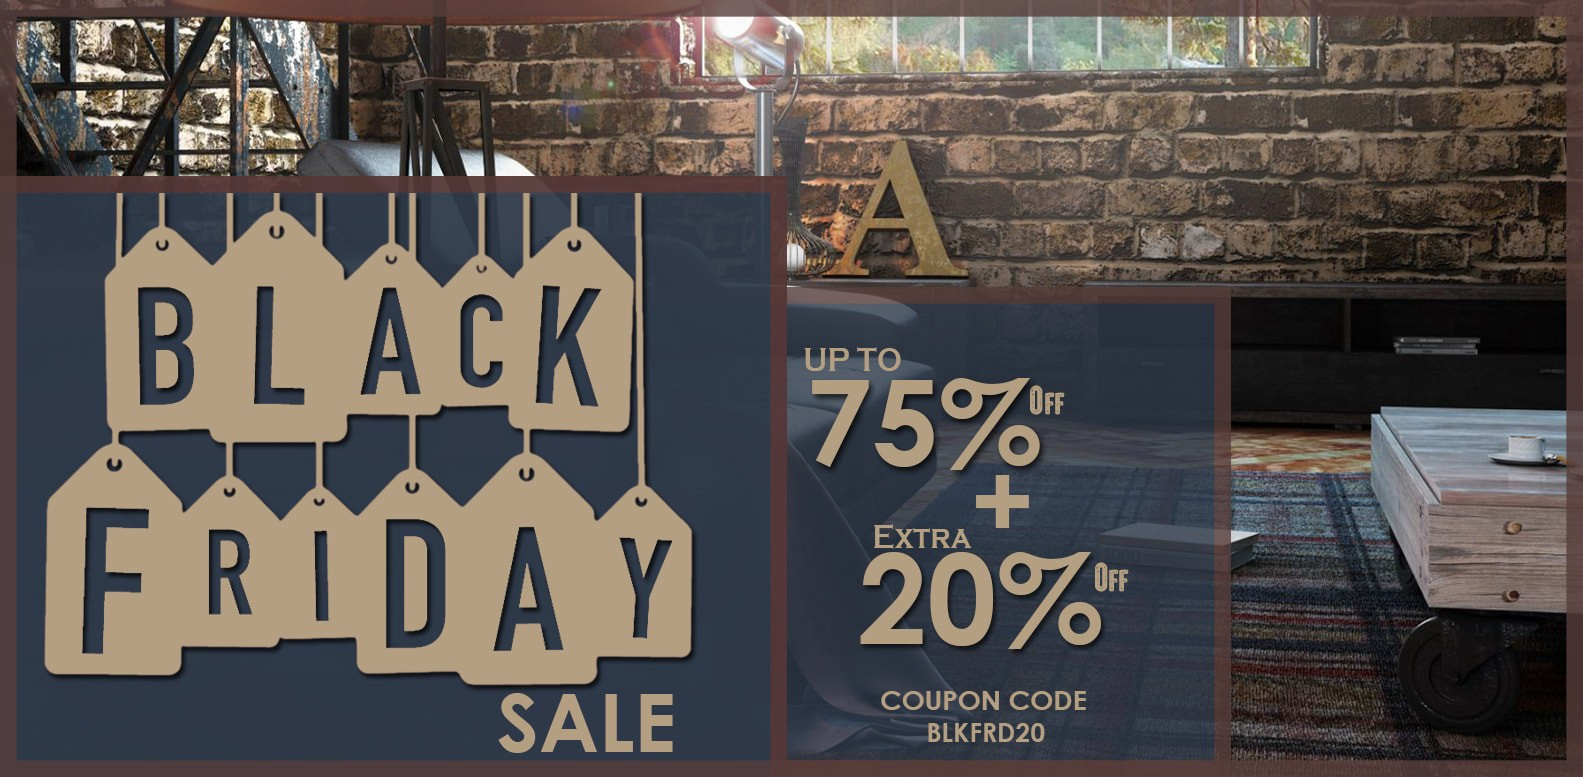 Black Friday 2017 Deals On All Home Decorative Products